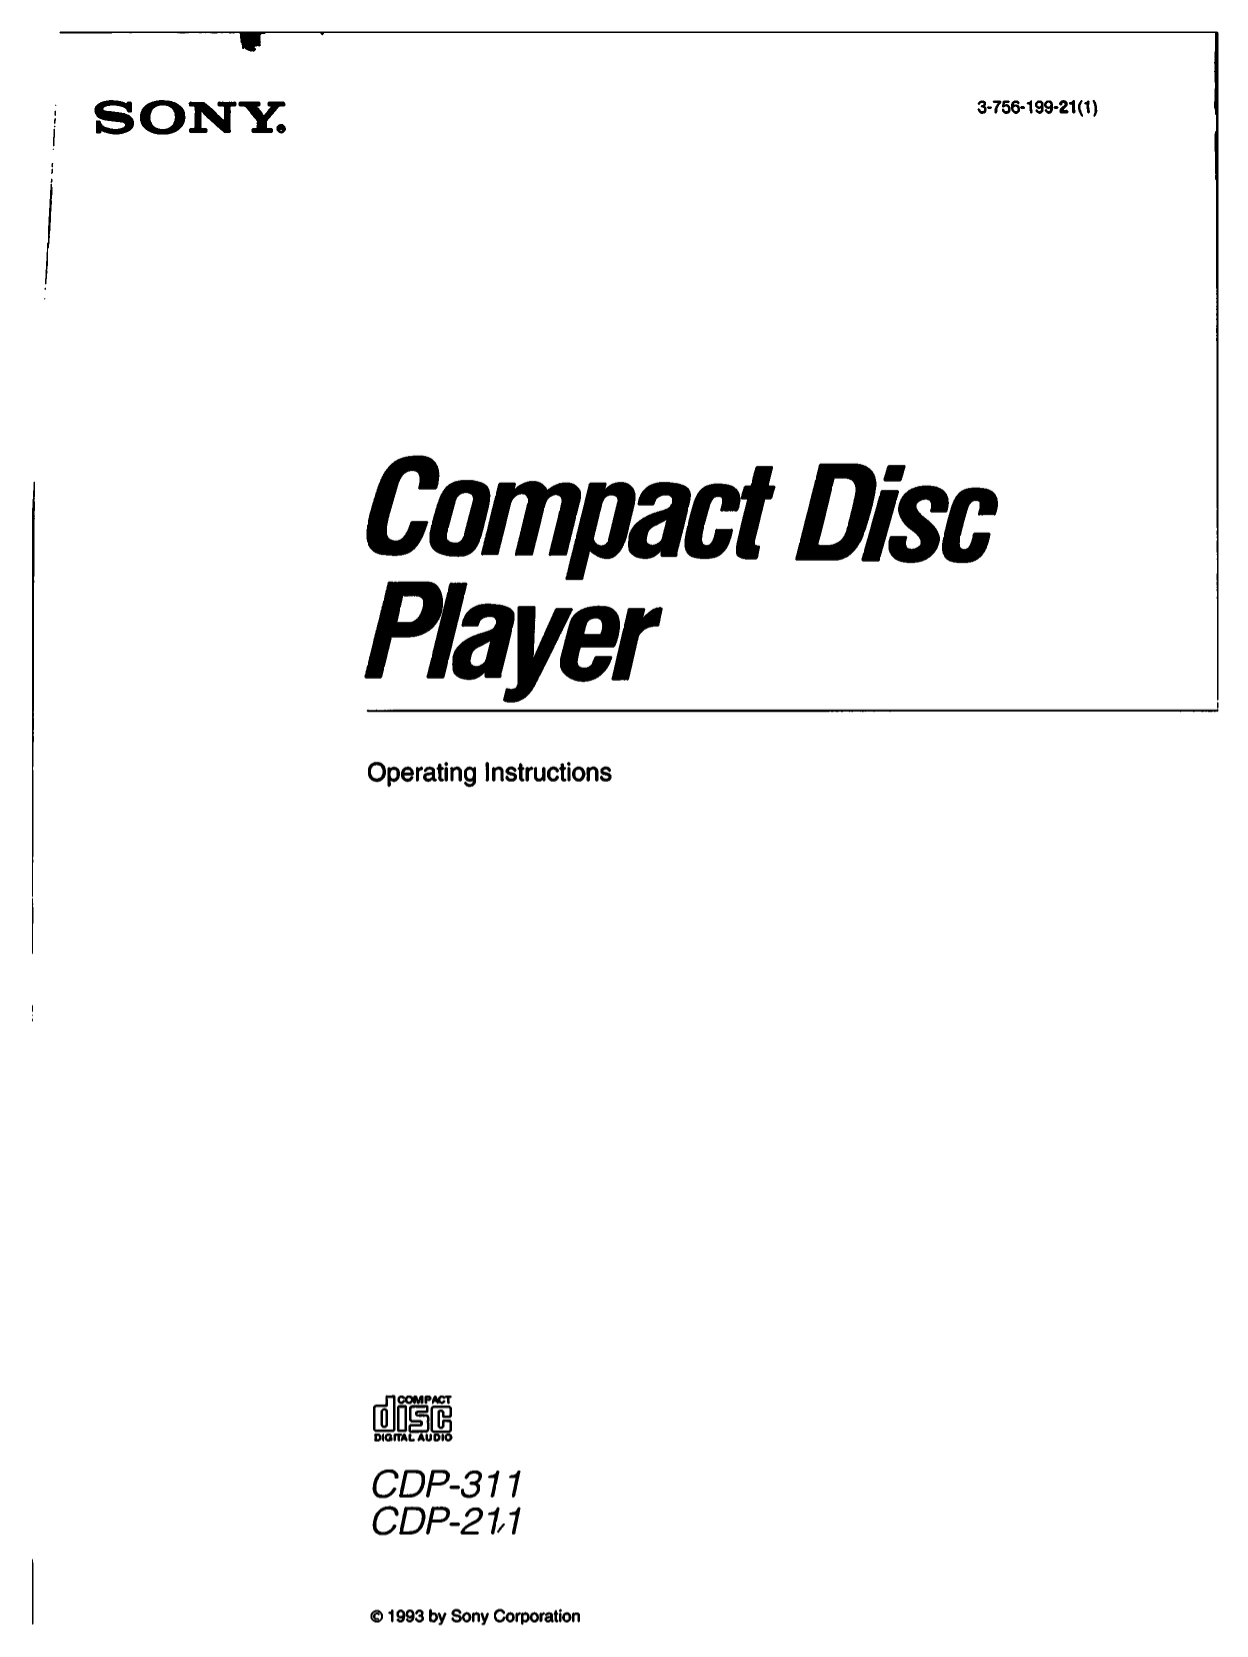 Download free pdf for Sony CDP-311 CD Player manual